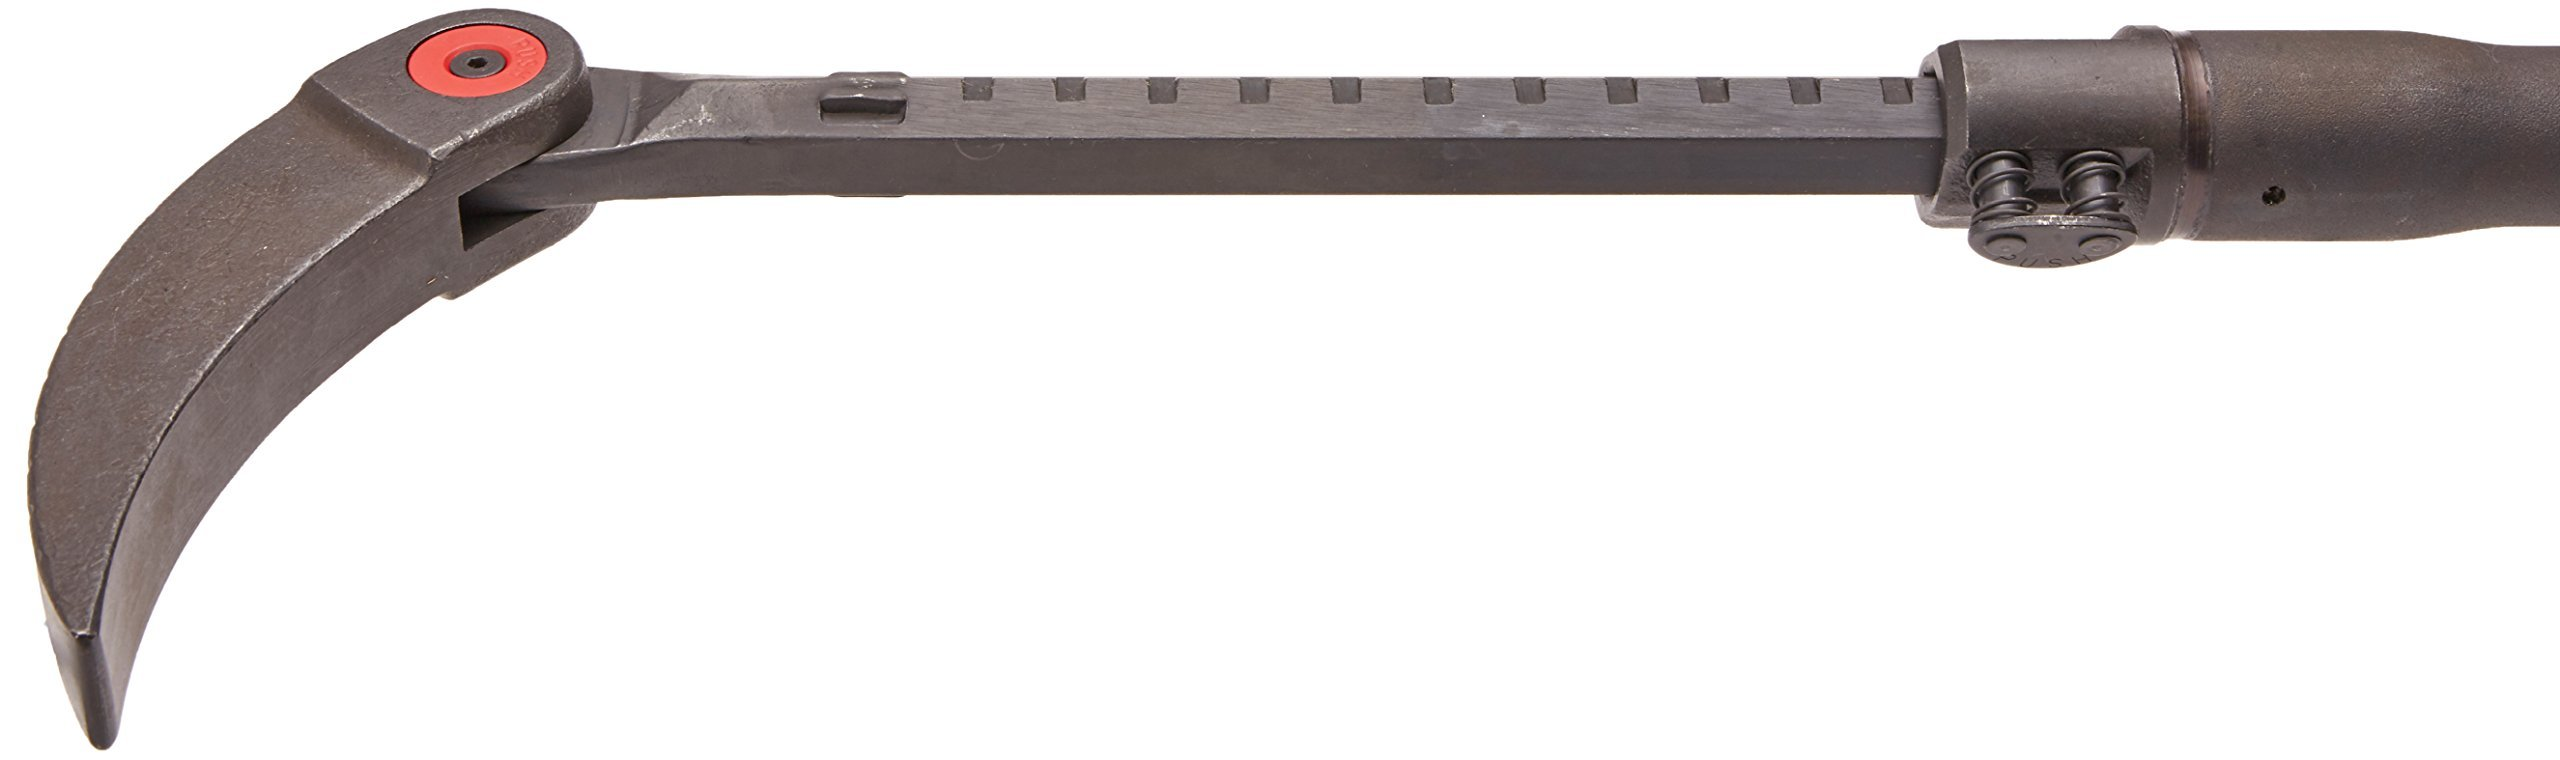 GearWrench 82248 48-Inch Extendable Pry Bar (Certified Refurbished) by Apex Tool Group (Image #2)